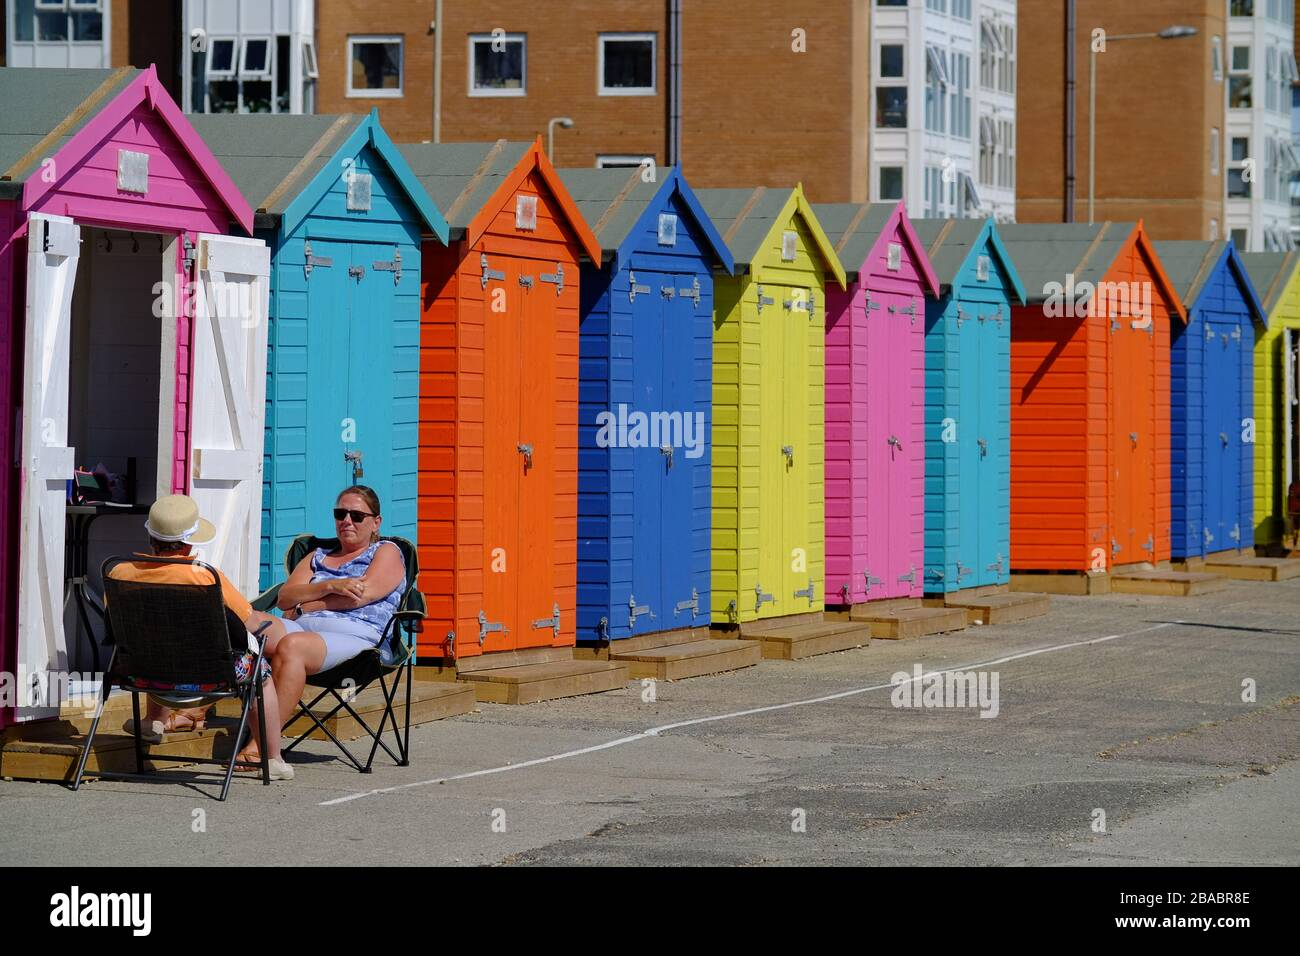 Couple relaxing by colourful beach huts, Seaford, UK Stock Photo